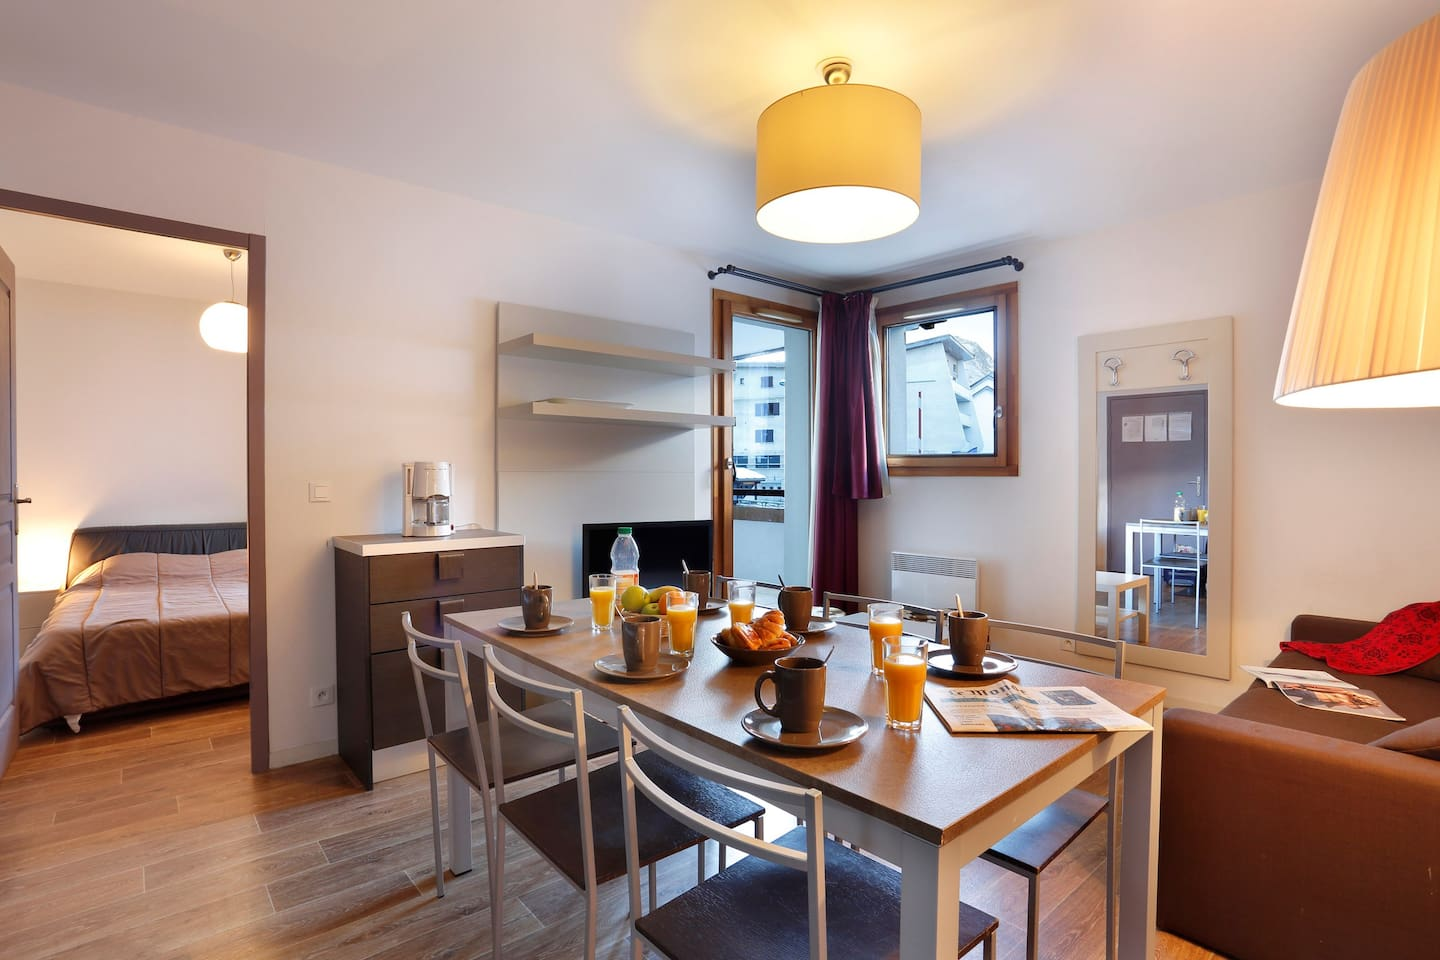 Come and stay in our cozy and charming apartment in Les Deux Alpes!